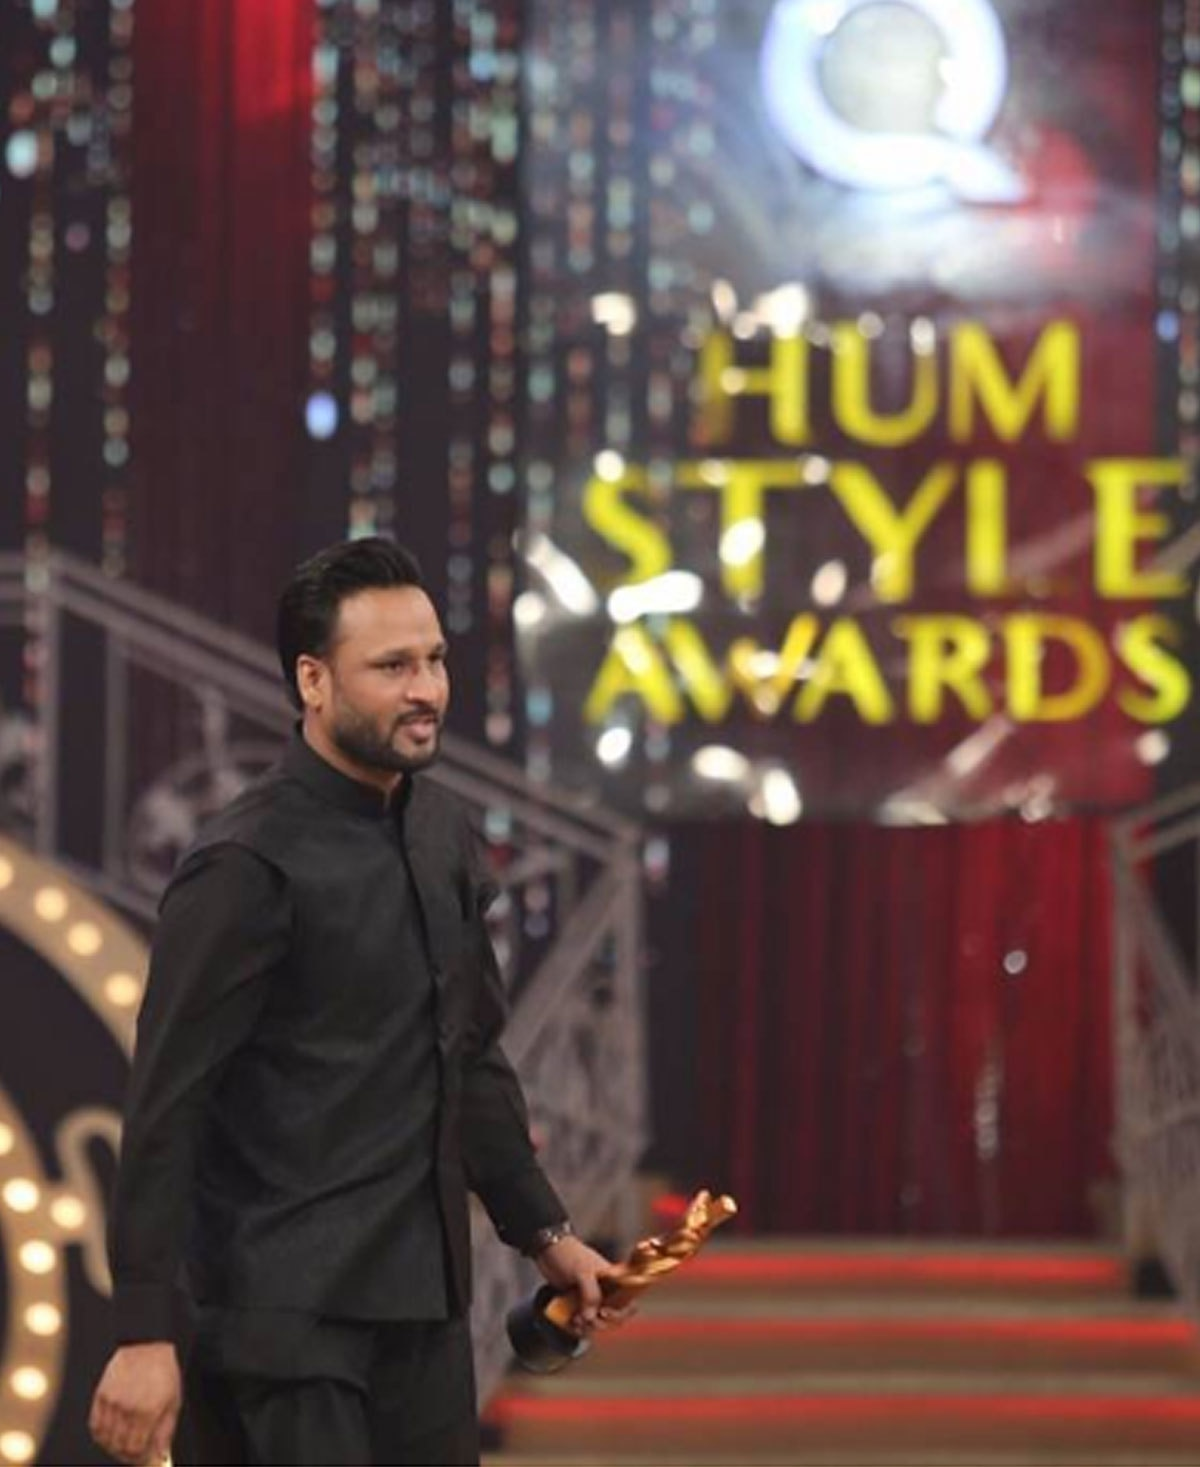 Shahbaz walking away with his award in hand. Photo: Instagram